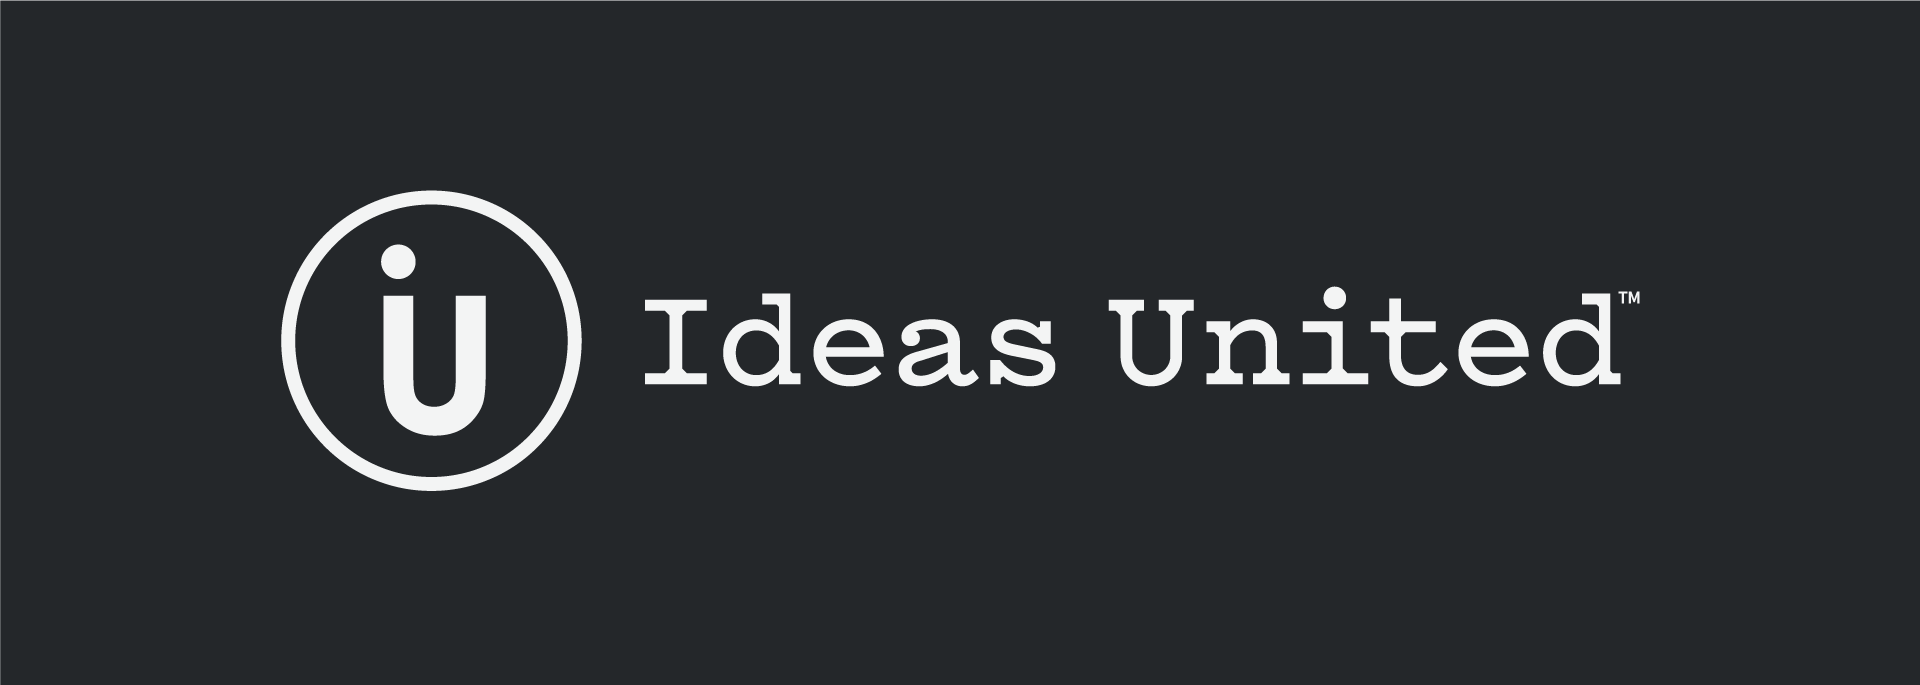 Ideas United channel